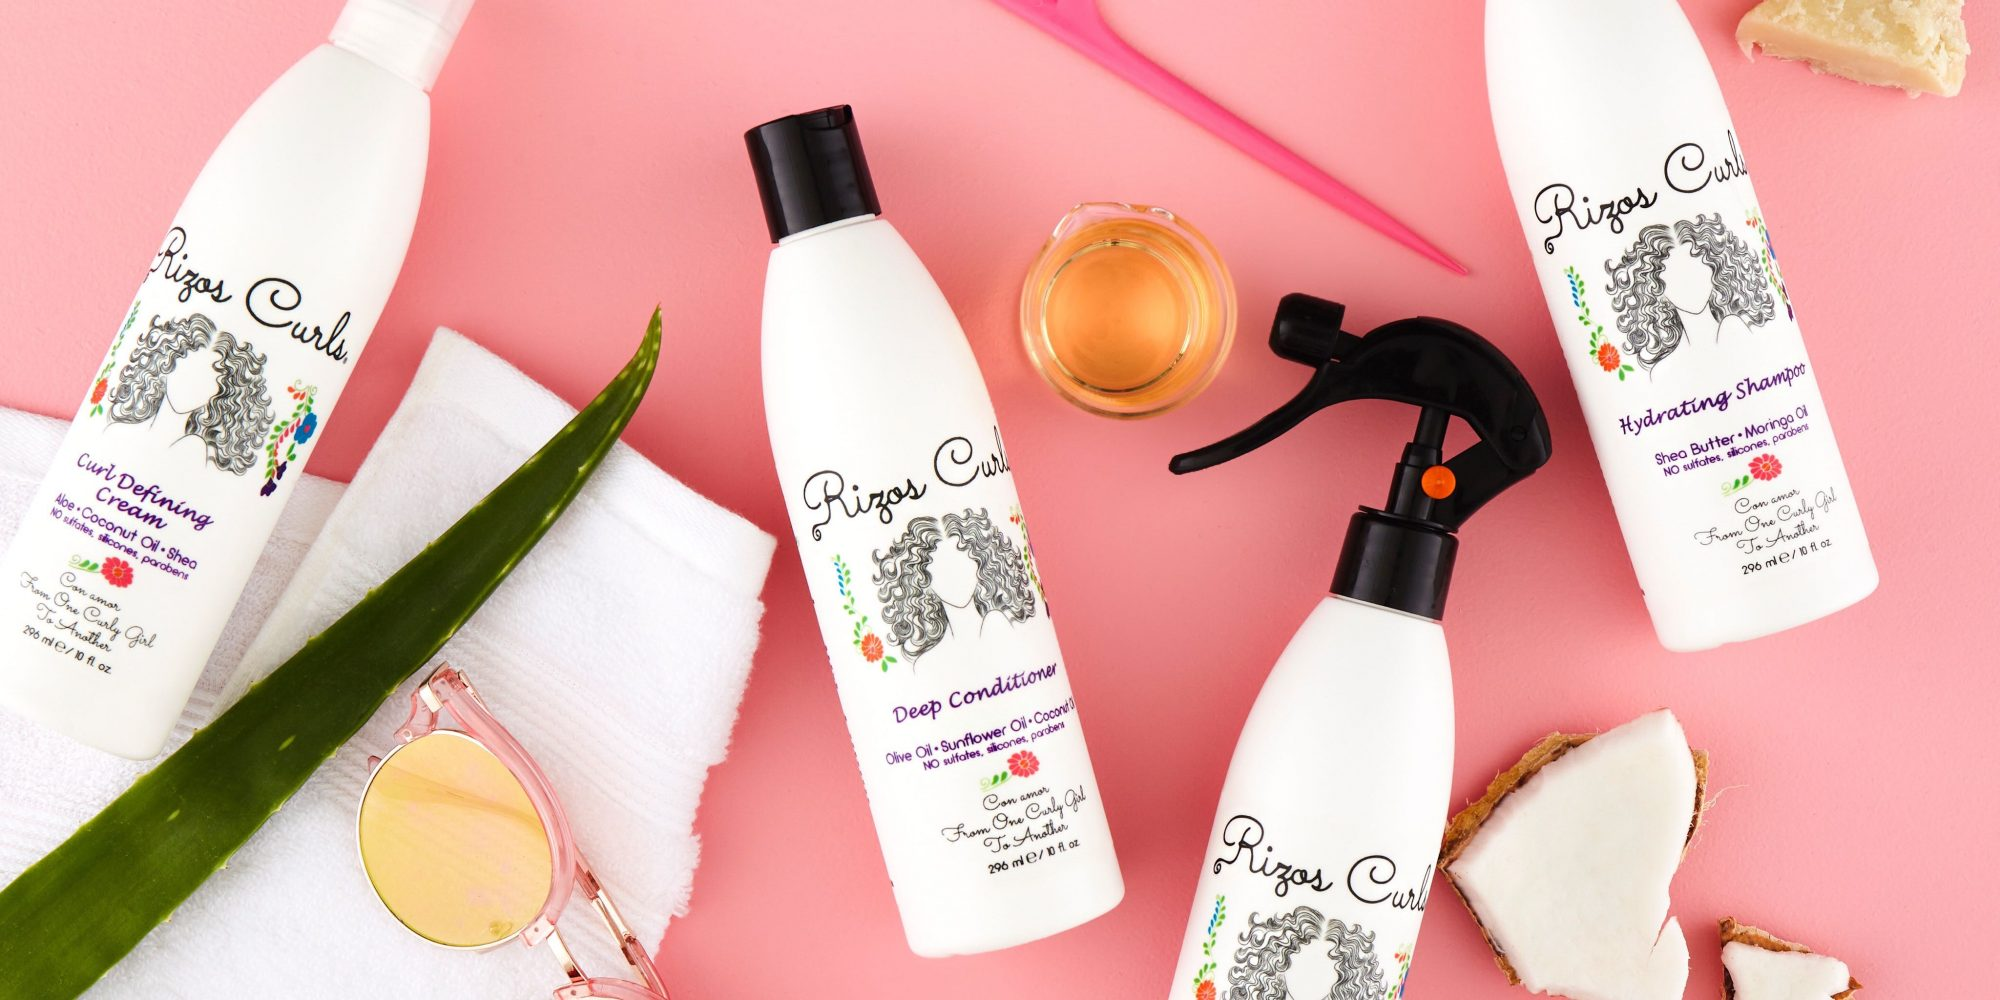 Self-Funded, Latina-Owned Haircare Brand Rizos Curls Hits Target Shelves